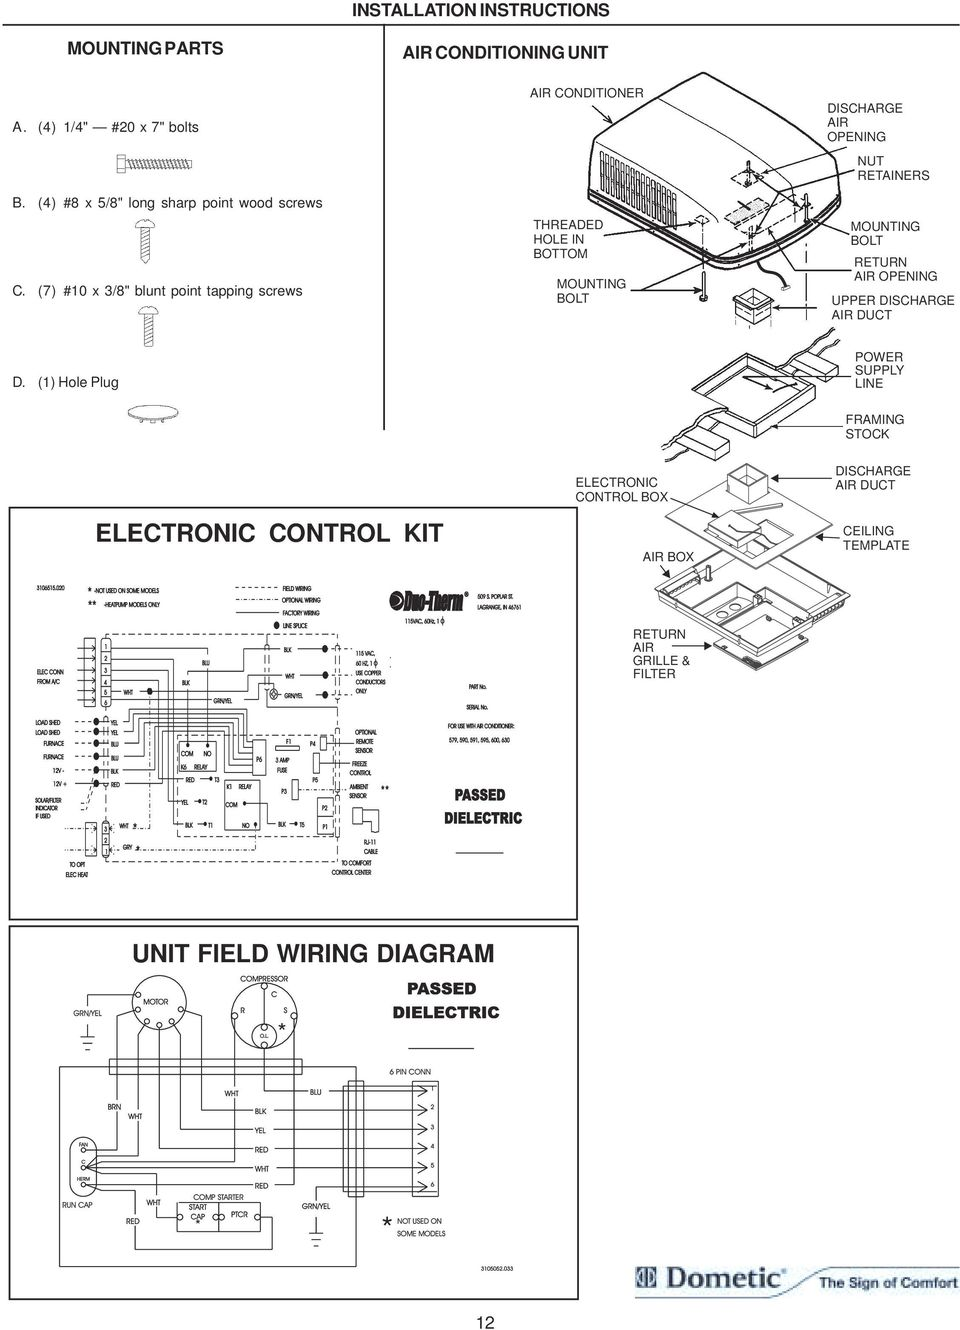 Duo Therm Ac Wiring Diagram 579 Simple Detailed Comfort Control Thermostat Brisk Air Series 590 595 Pdf